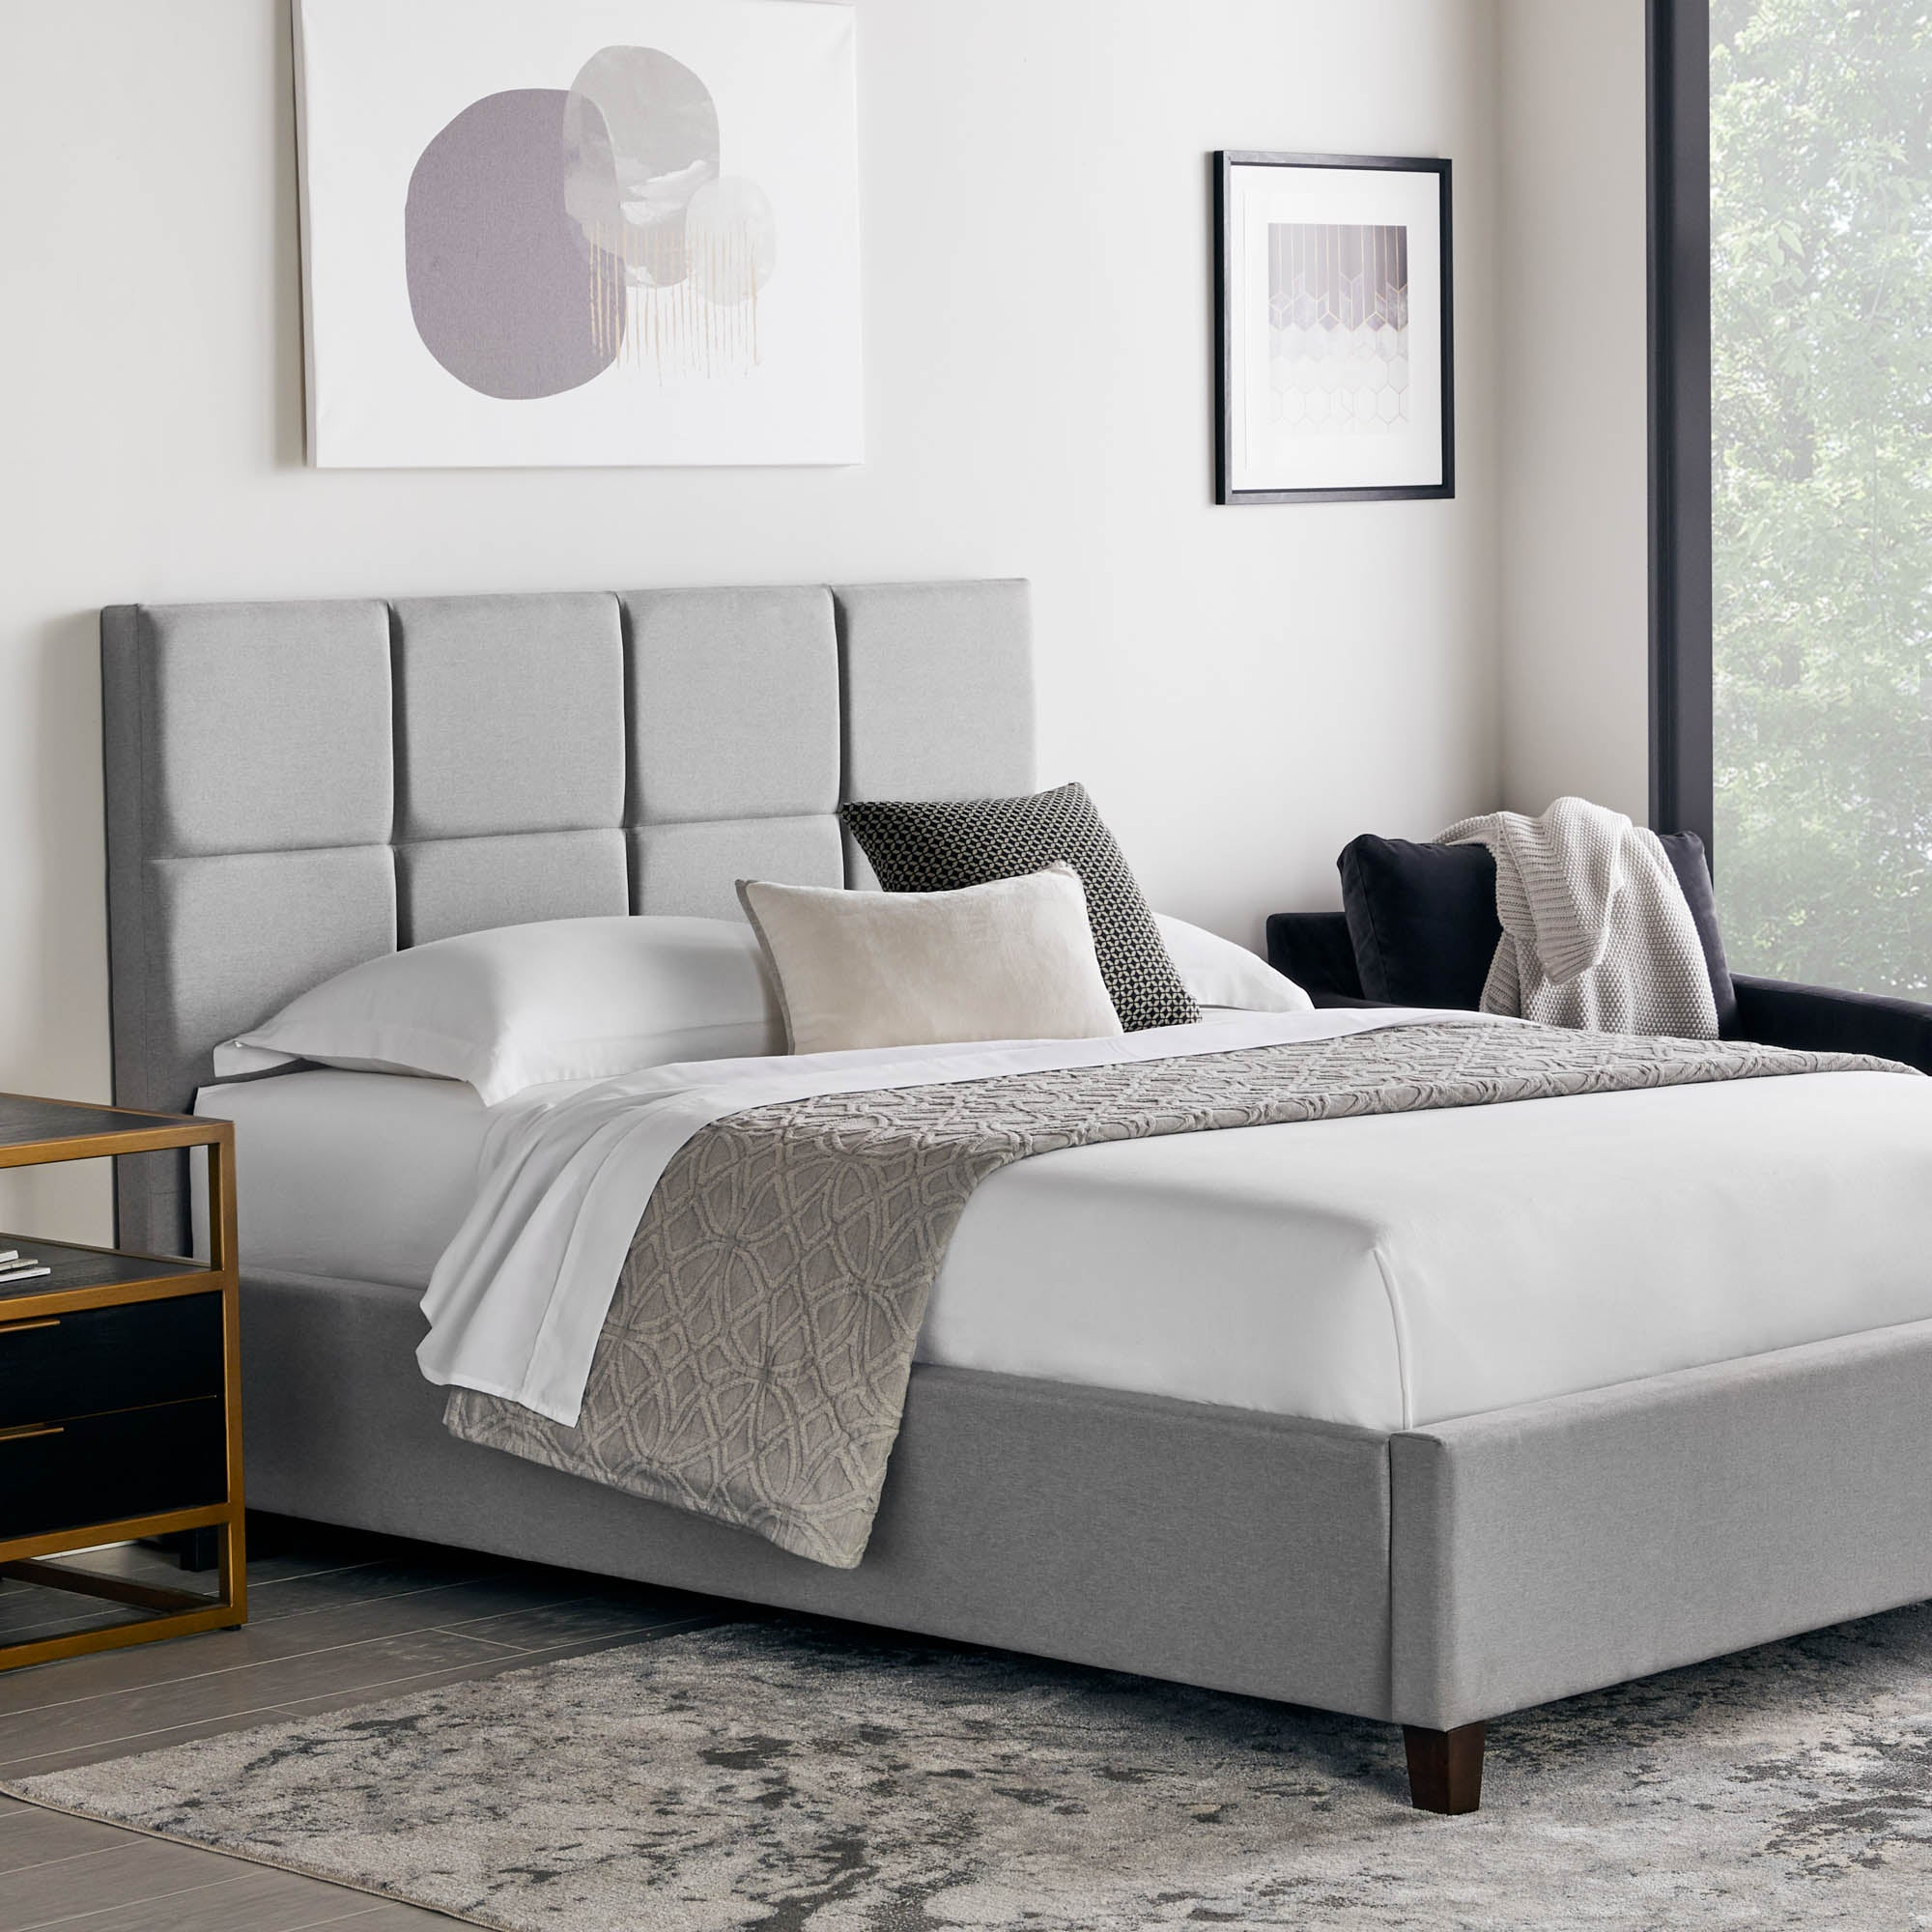 Yogasleep by Malouf Scoresby Designer Bed Stone - Yogasleep by Malouf